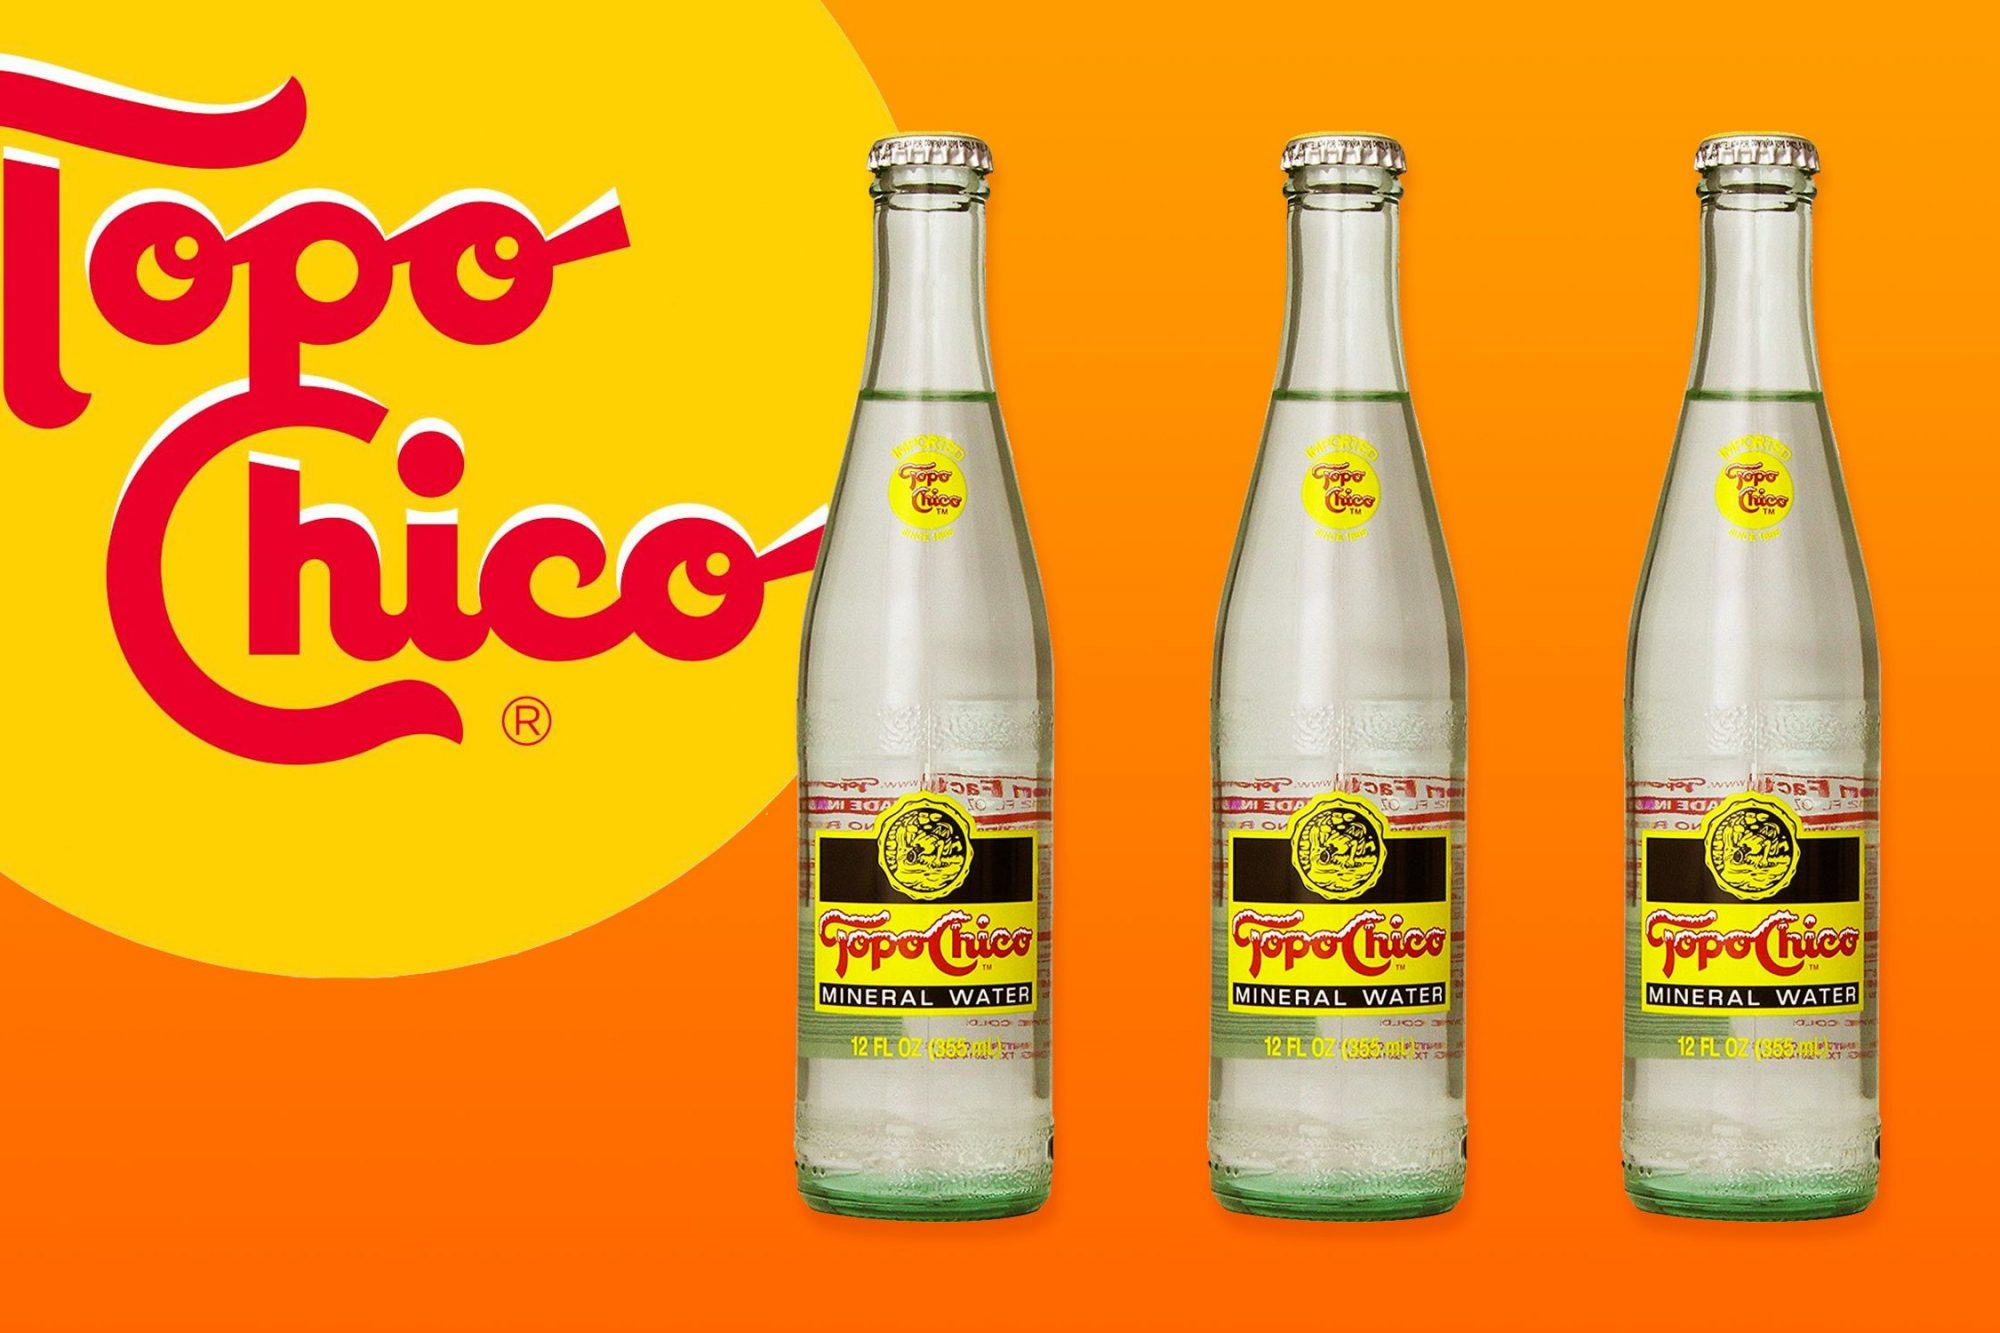 EC: Why Topo Chico Is Big in Texas